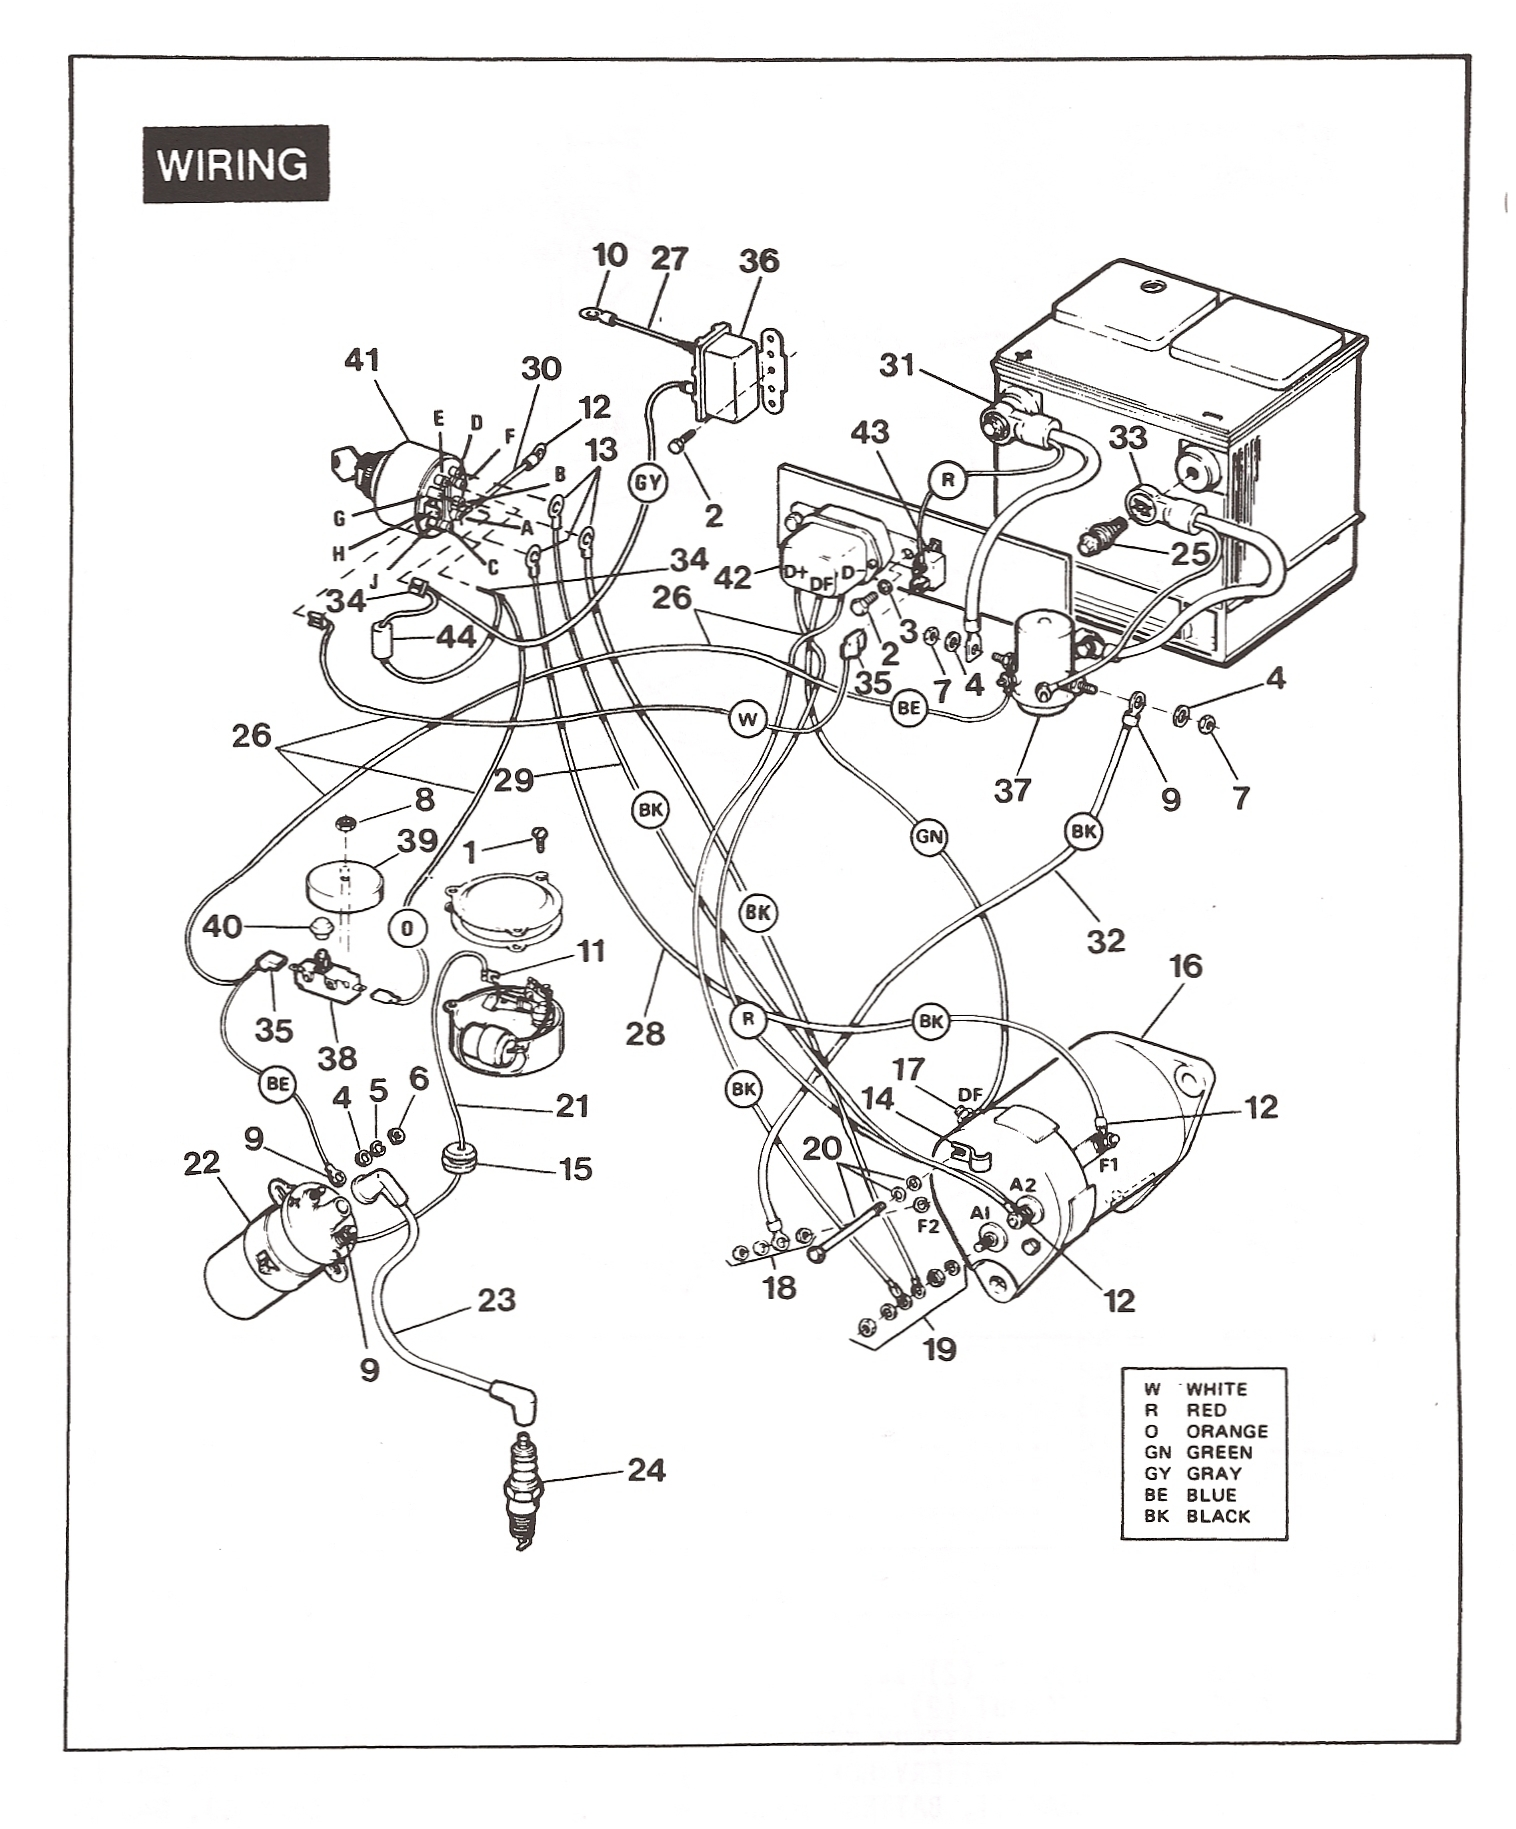 columbia golf cart wiring diagram columbia golf cart wiring diagram 1987